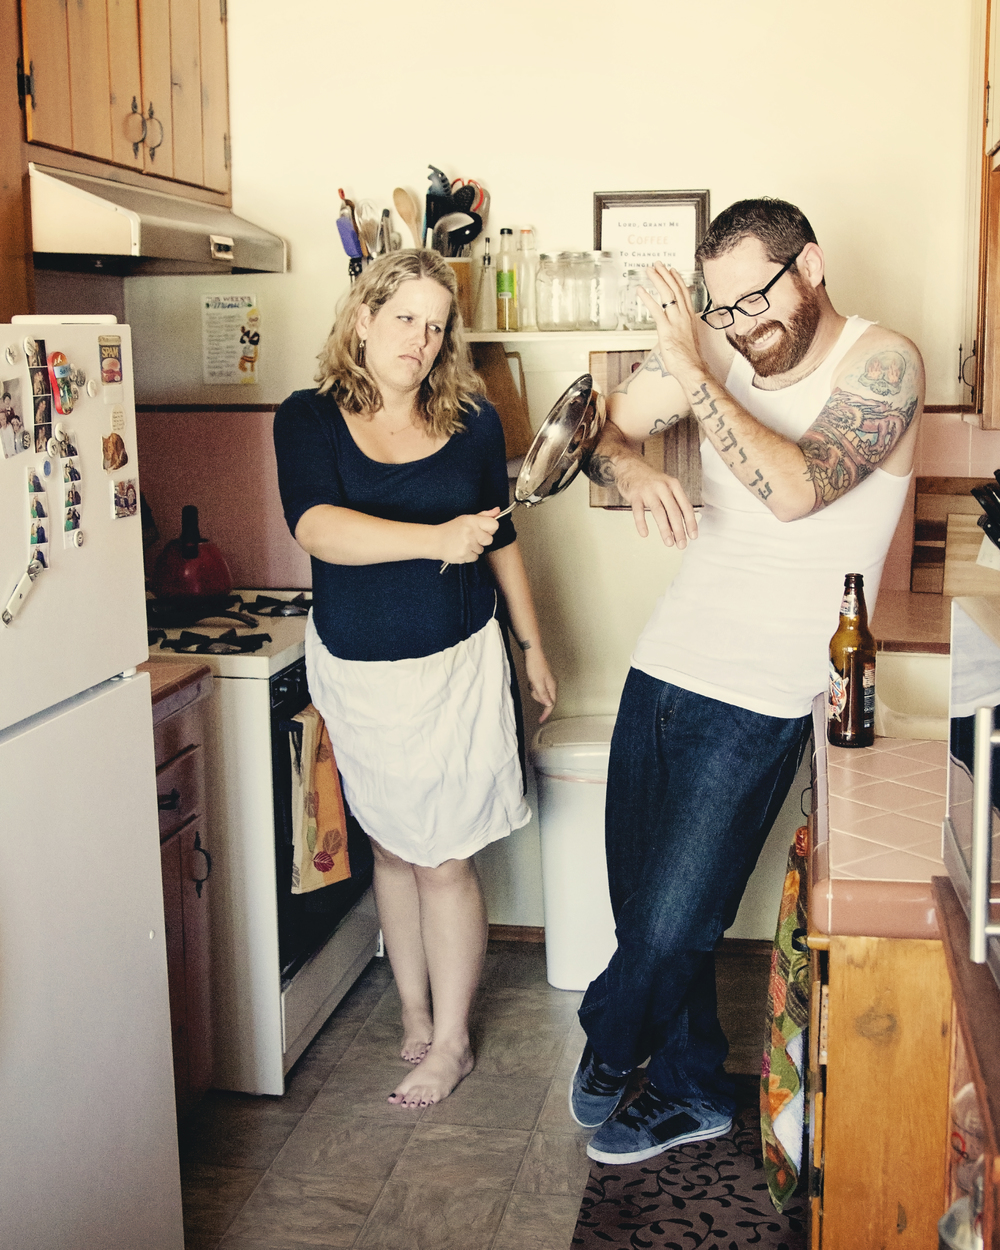 Barefoot Pregnant And In The Kitchen: Stevee Nicole Photography & Design